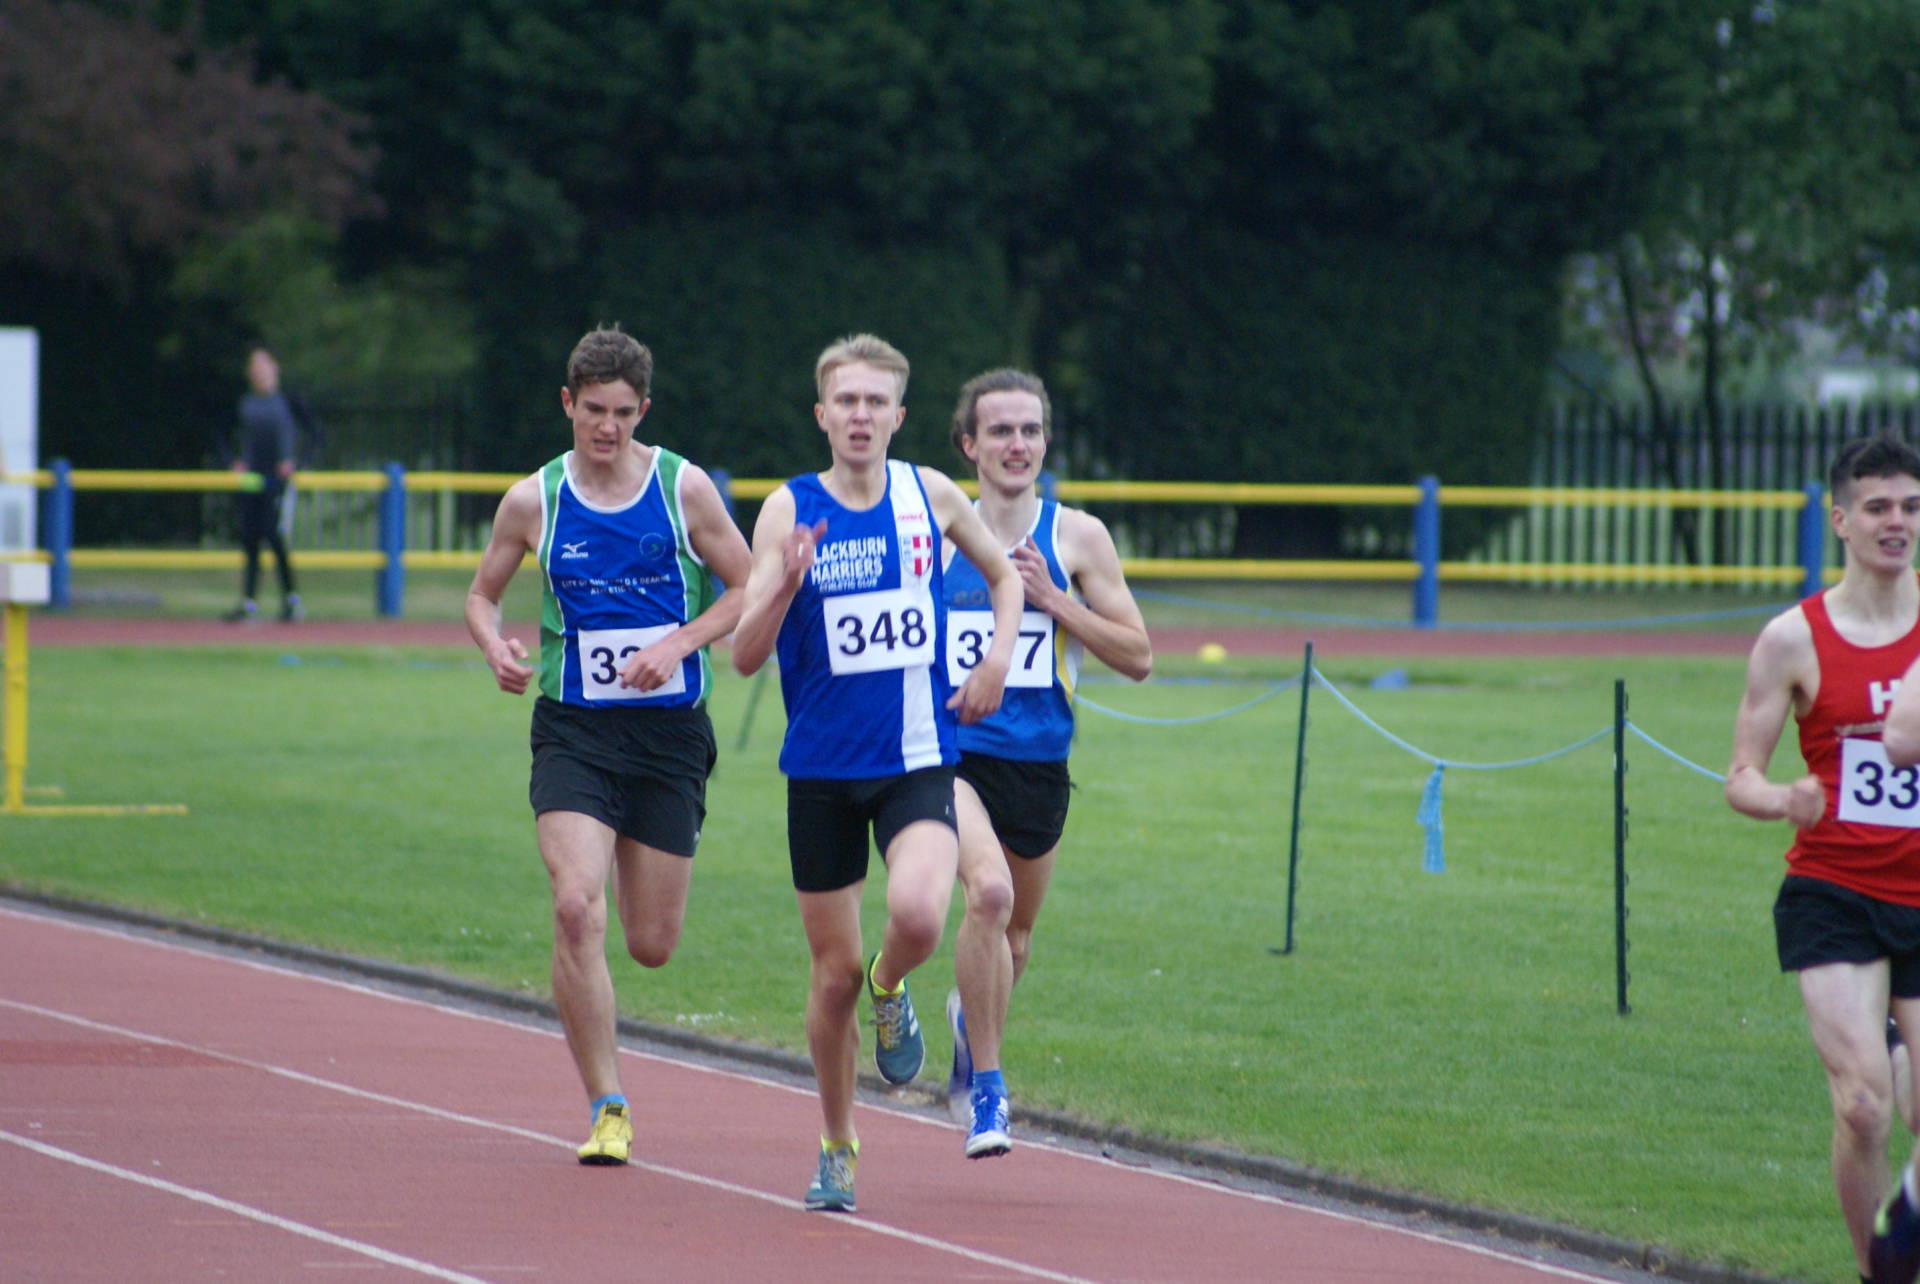 New PB for Nick and Jacob wins at Trafford